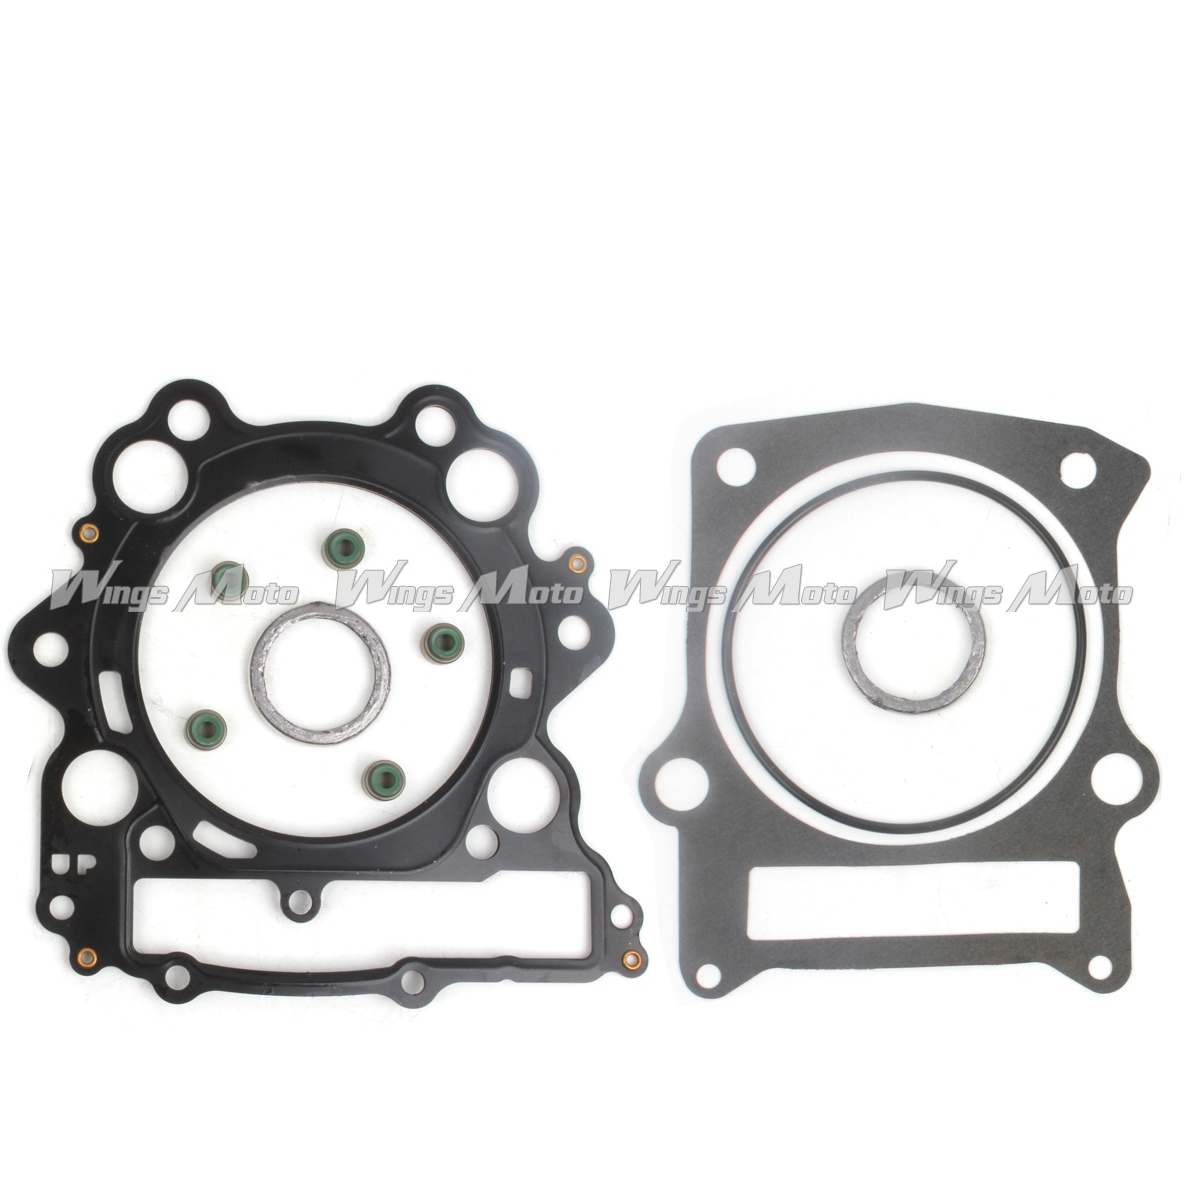 Top End Engine Gasket Kit for Yamaha YXR660 Rhino 04-07 YFM660 Grizzly 02-08